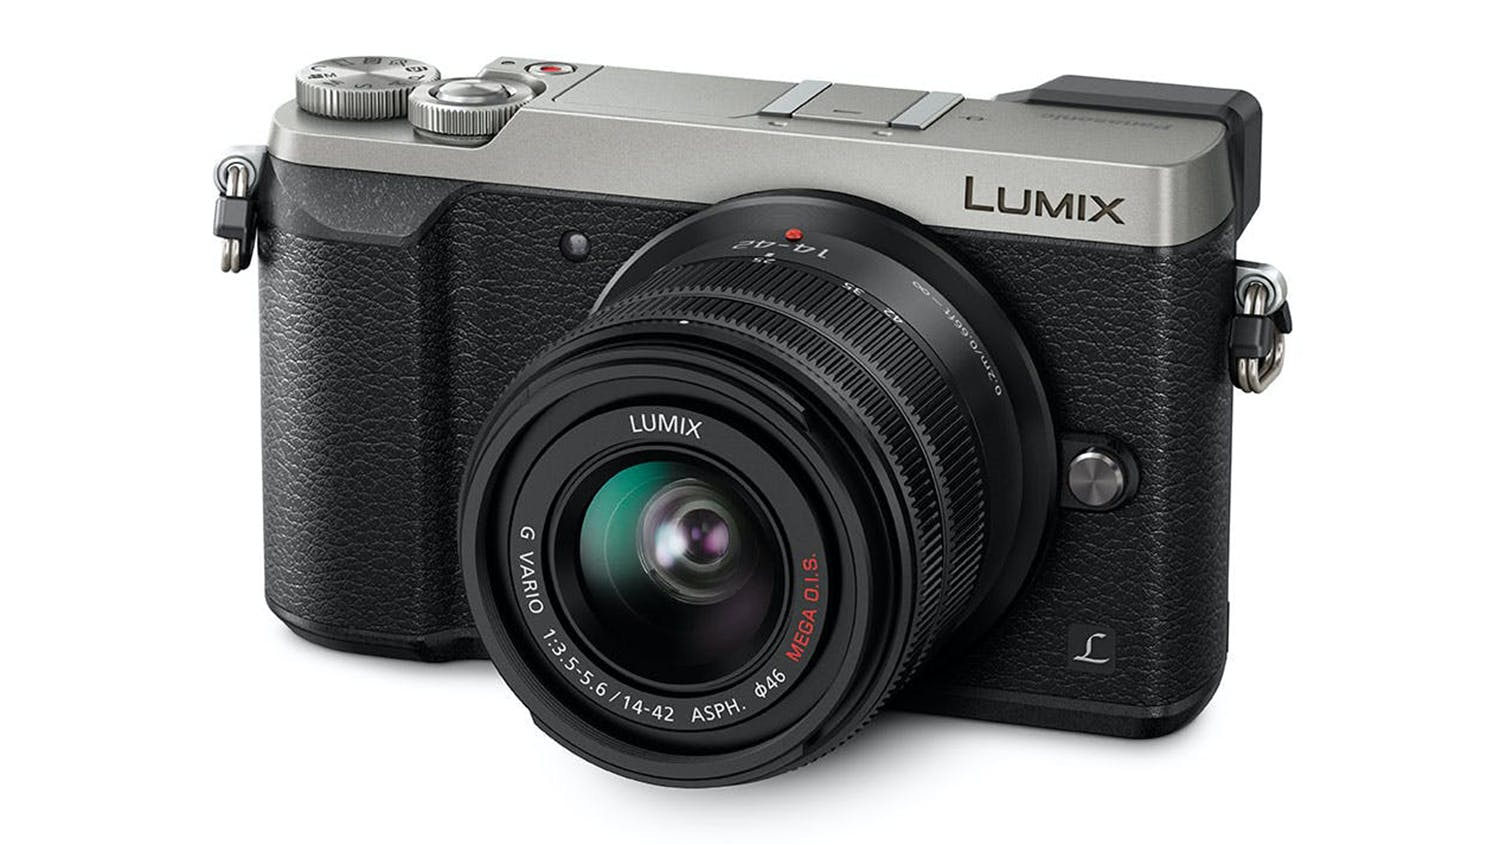 Panasonic Lumix GX85 Mirrorless Camera with 14-42mm Lens